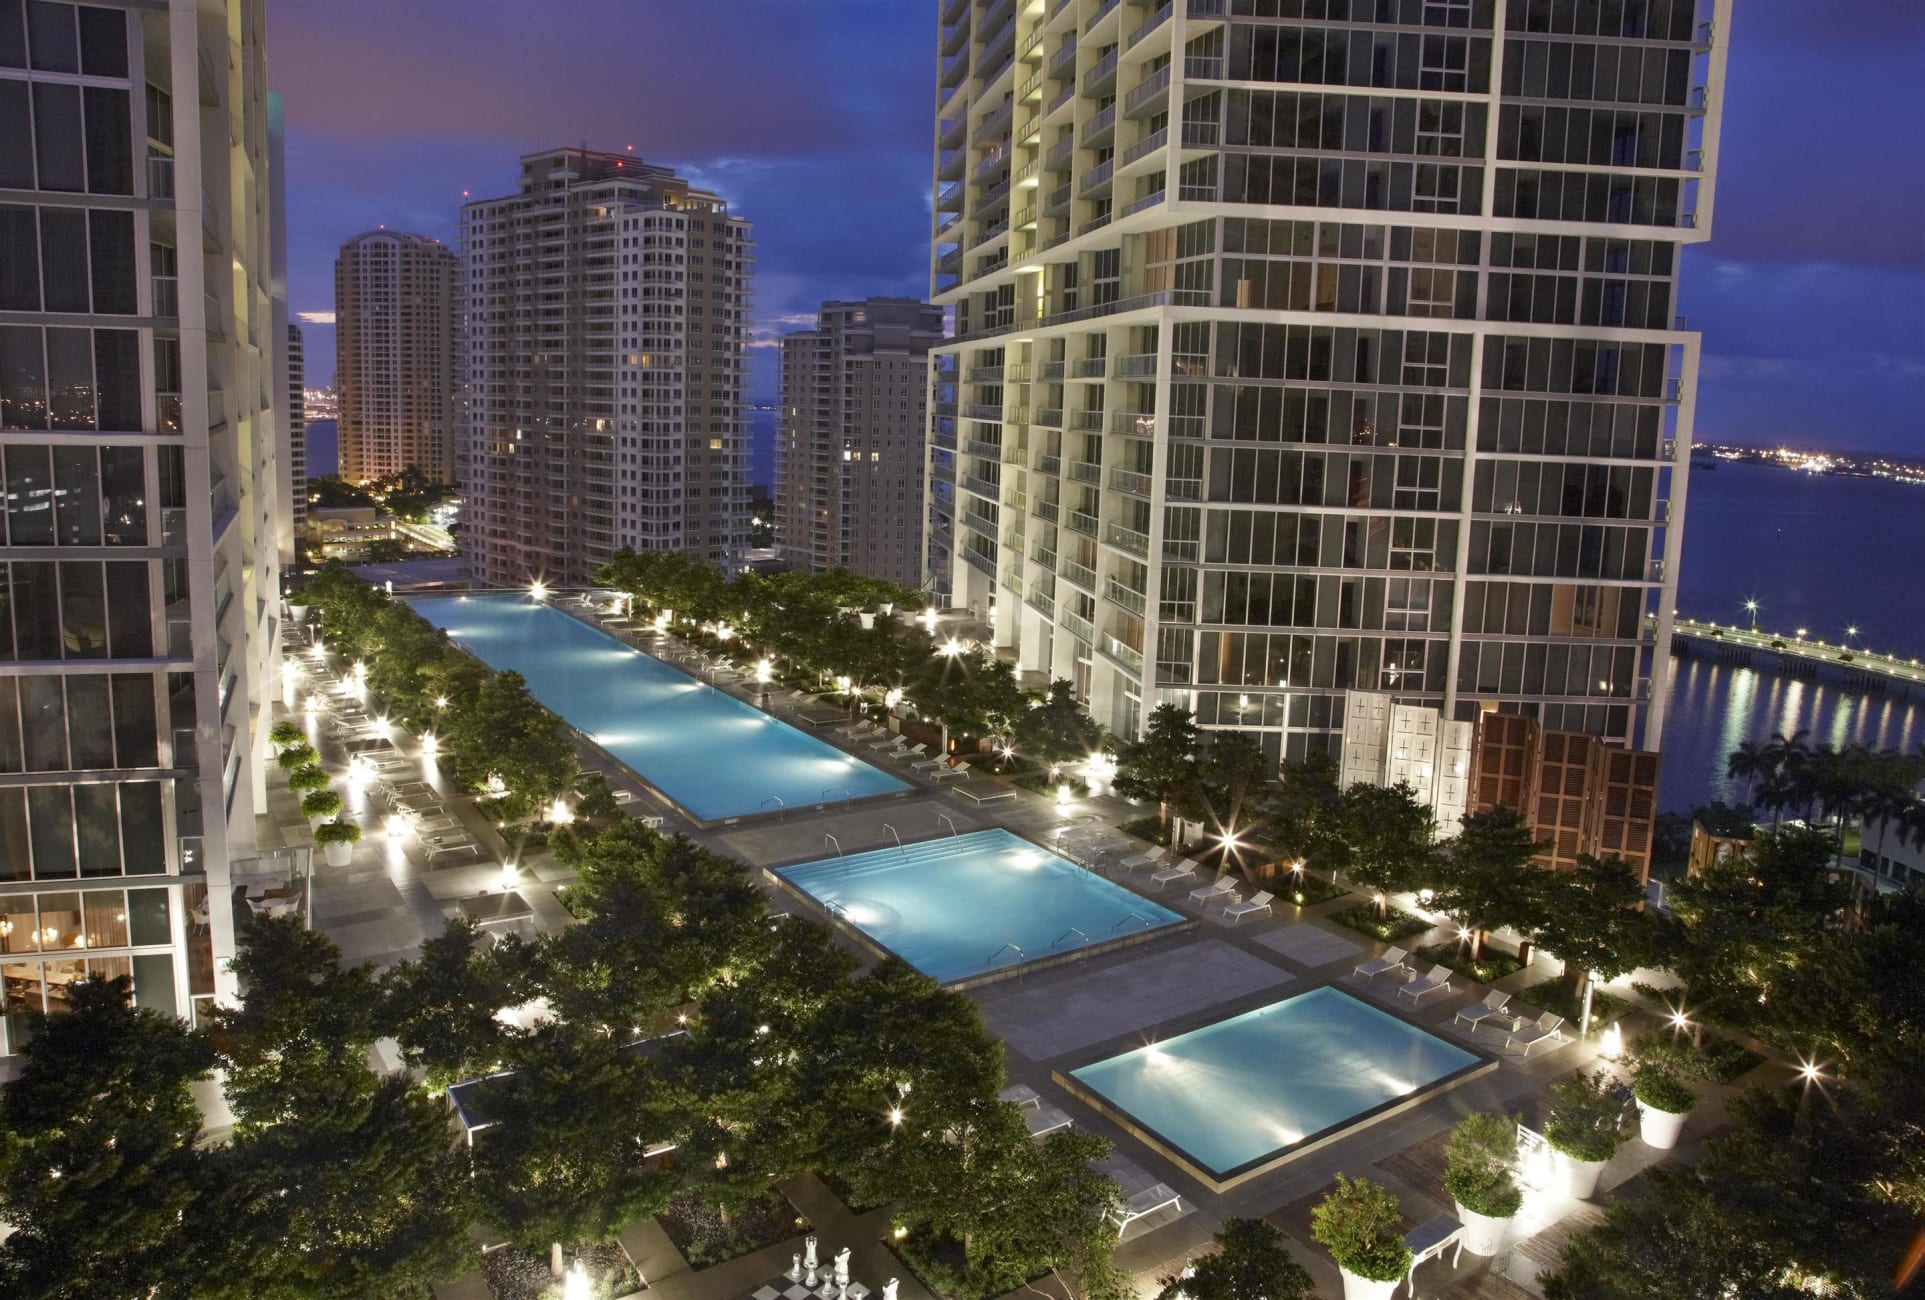 Miami Hotels Website Coupon Codes 2020